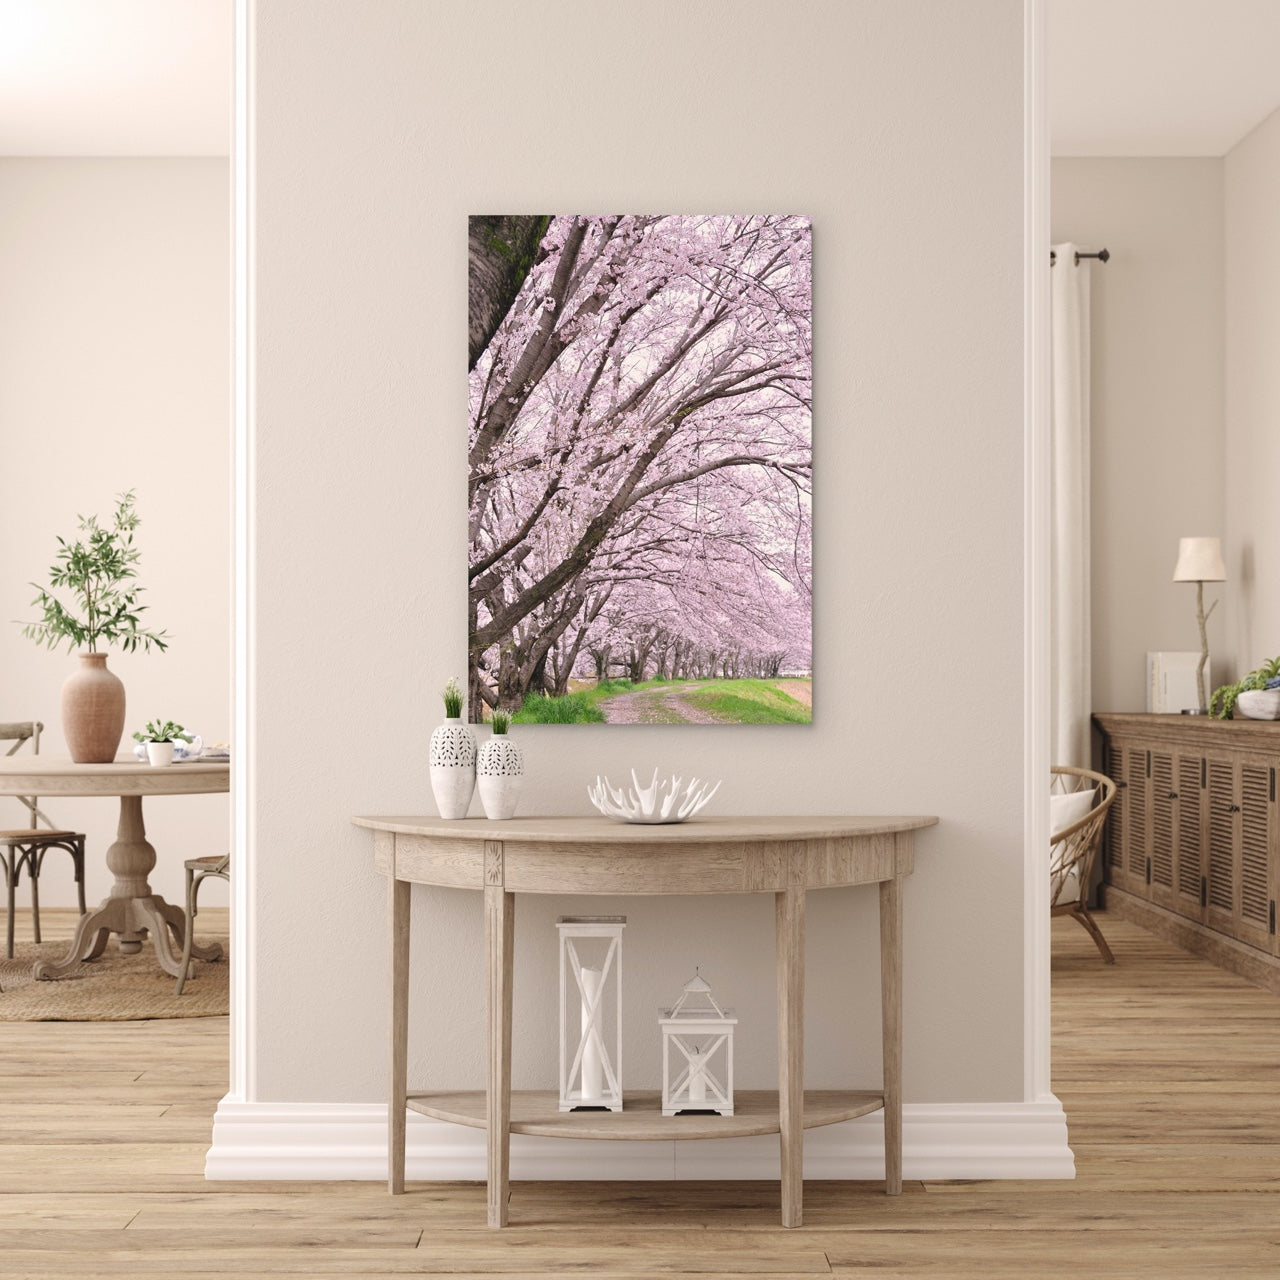 Floral Wall Art in living room